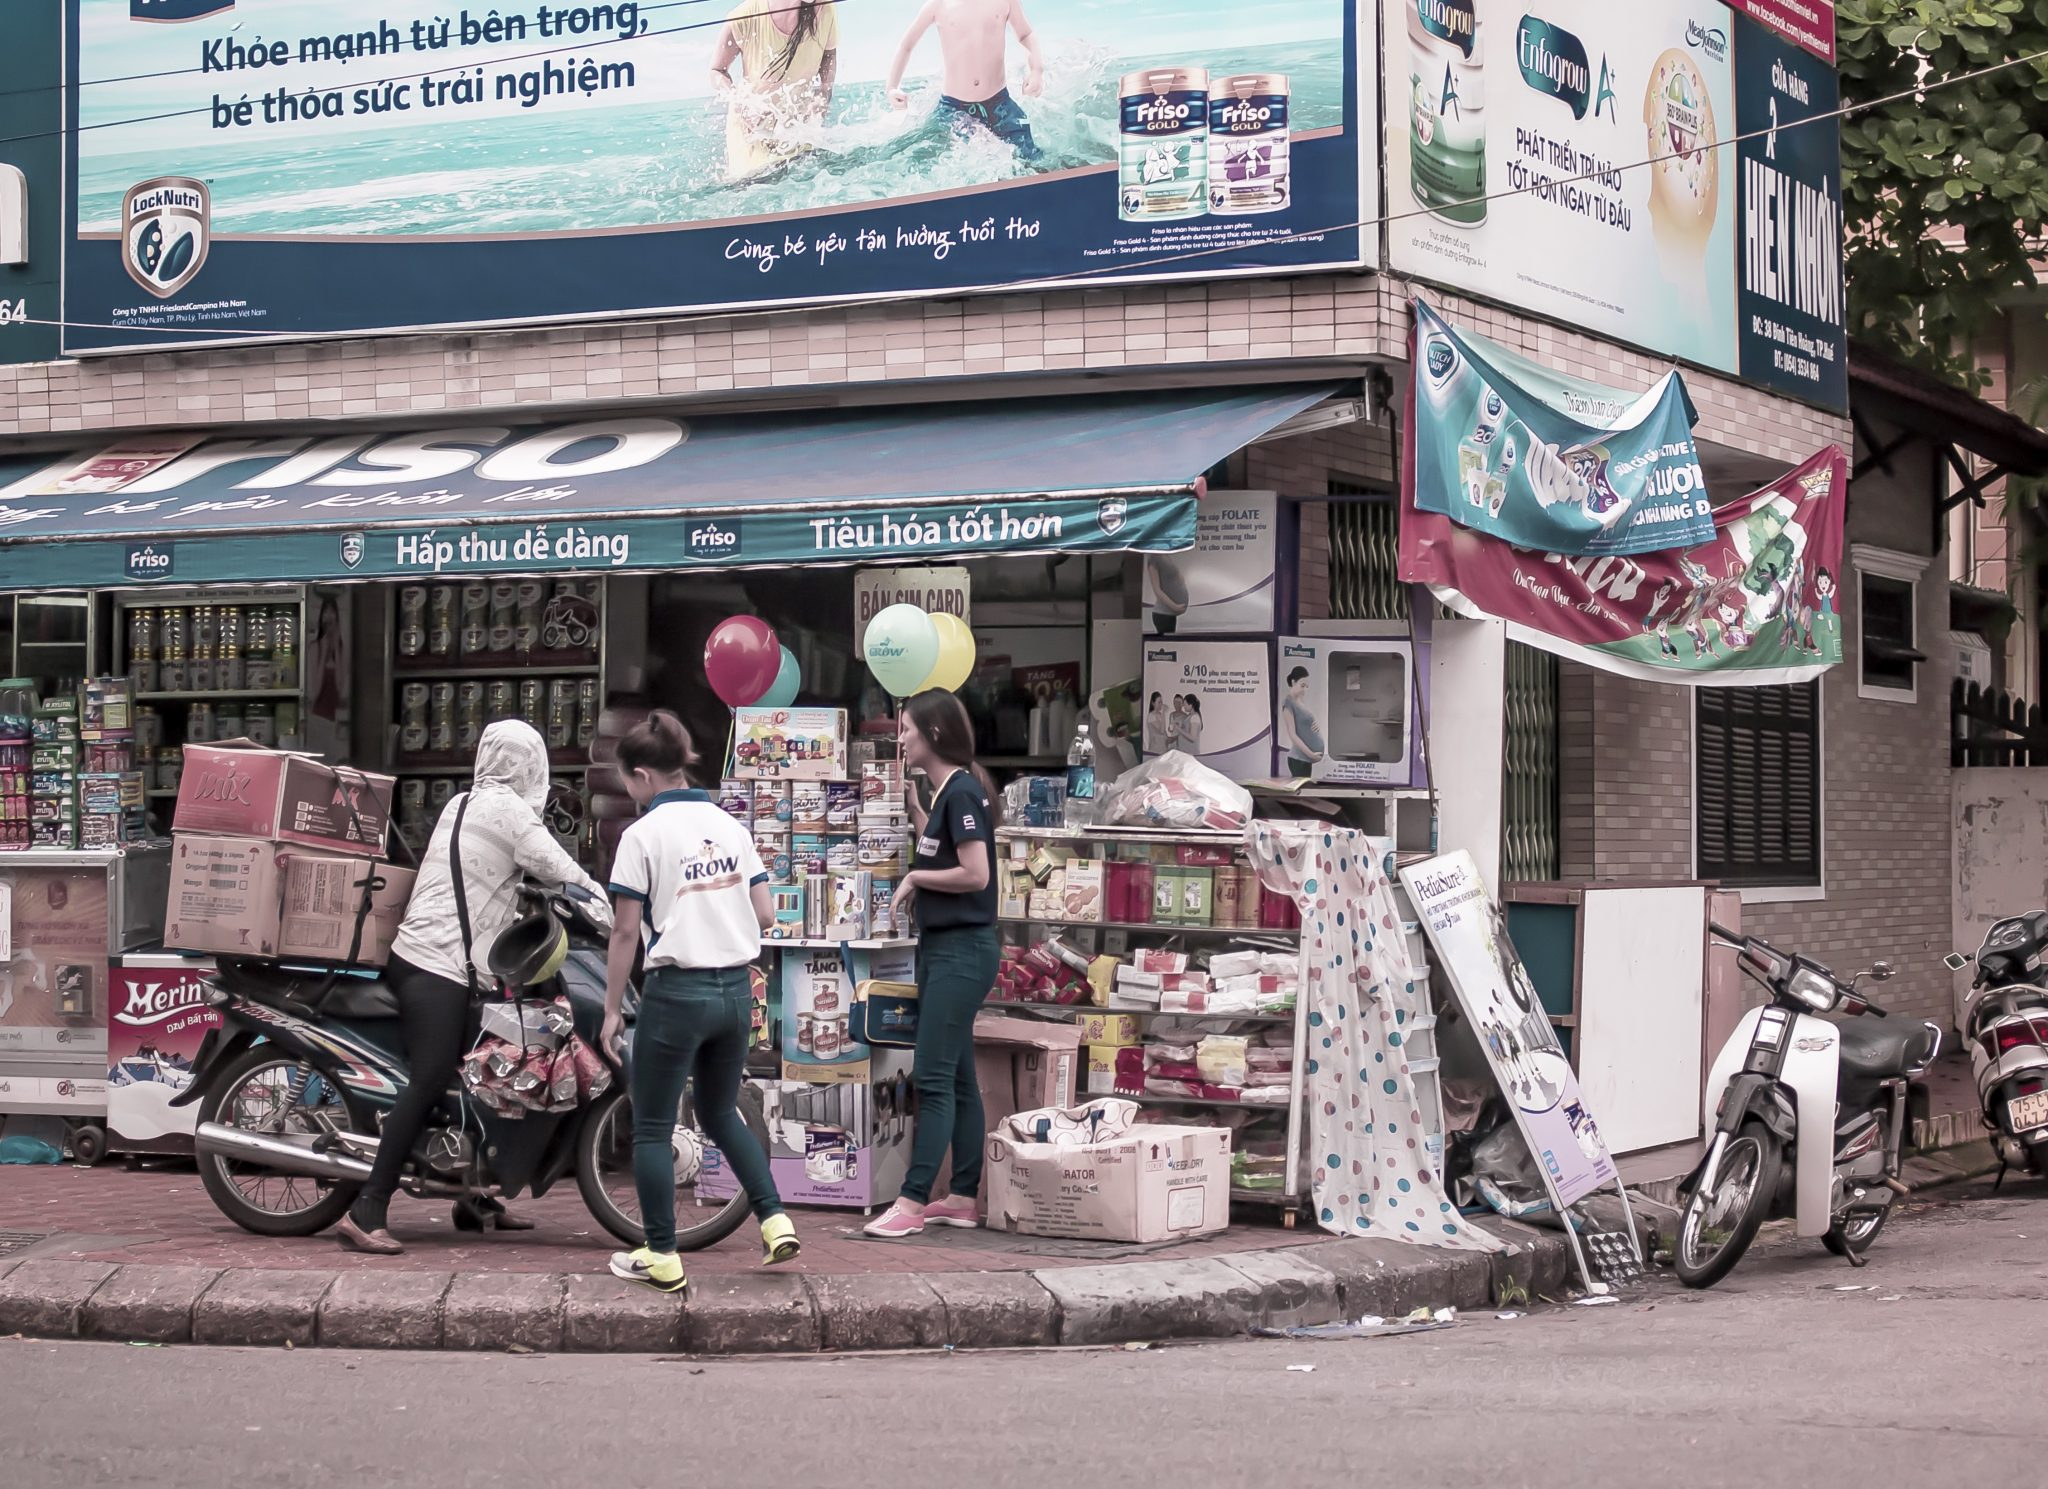 How to understand an American teacher near Nguyễn Văn Trỗi Street in Ho Chi Minh City, Vietnam